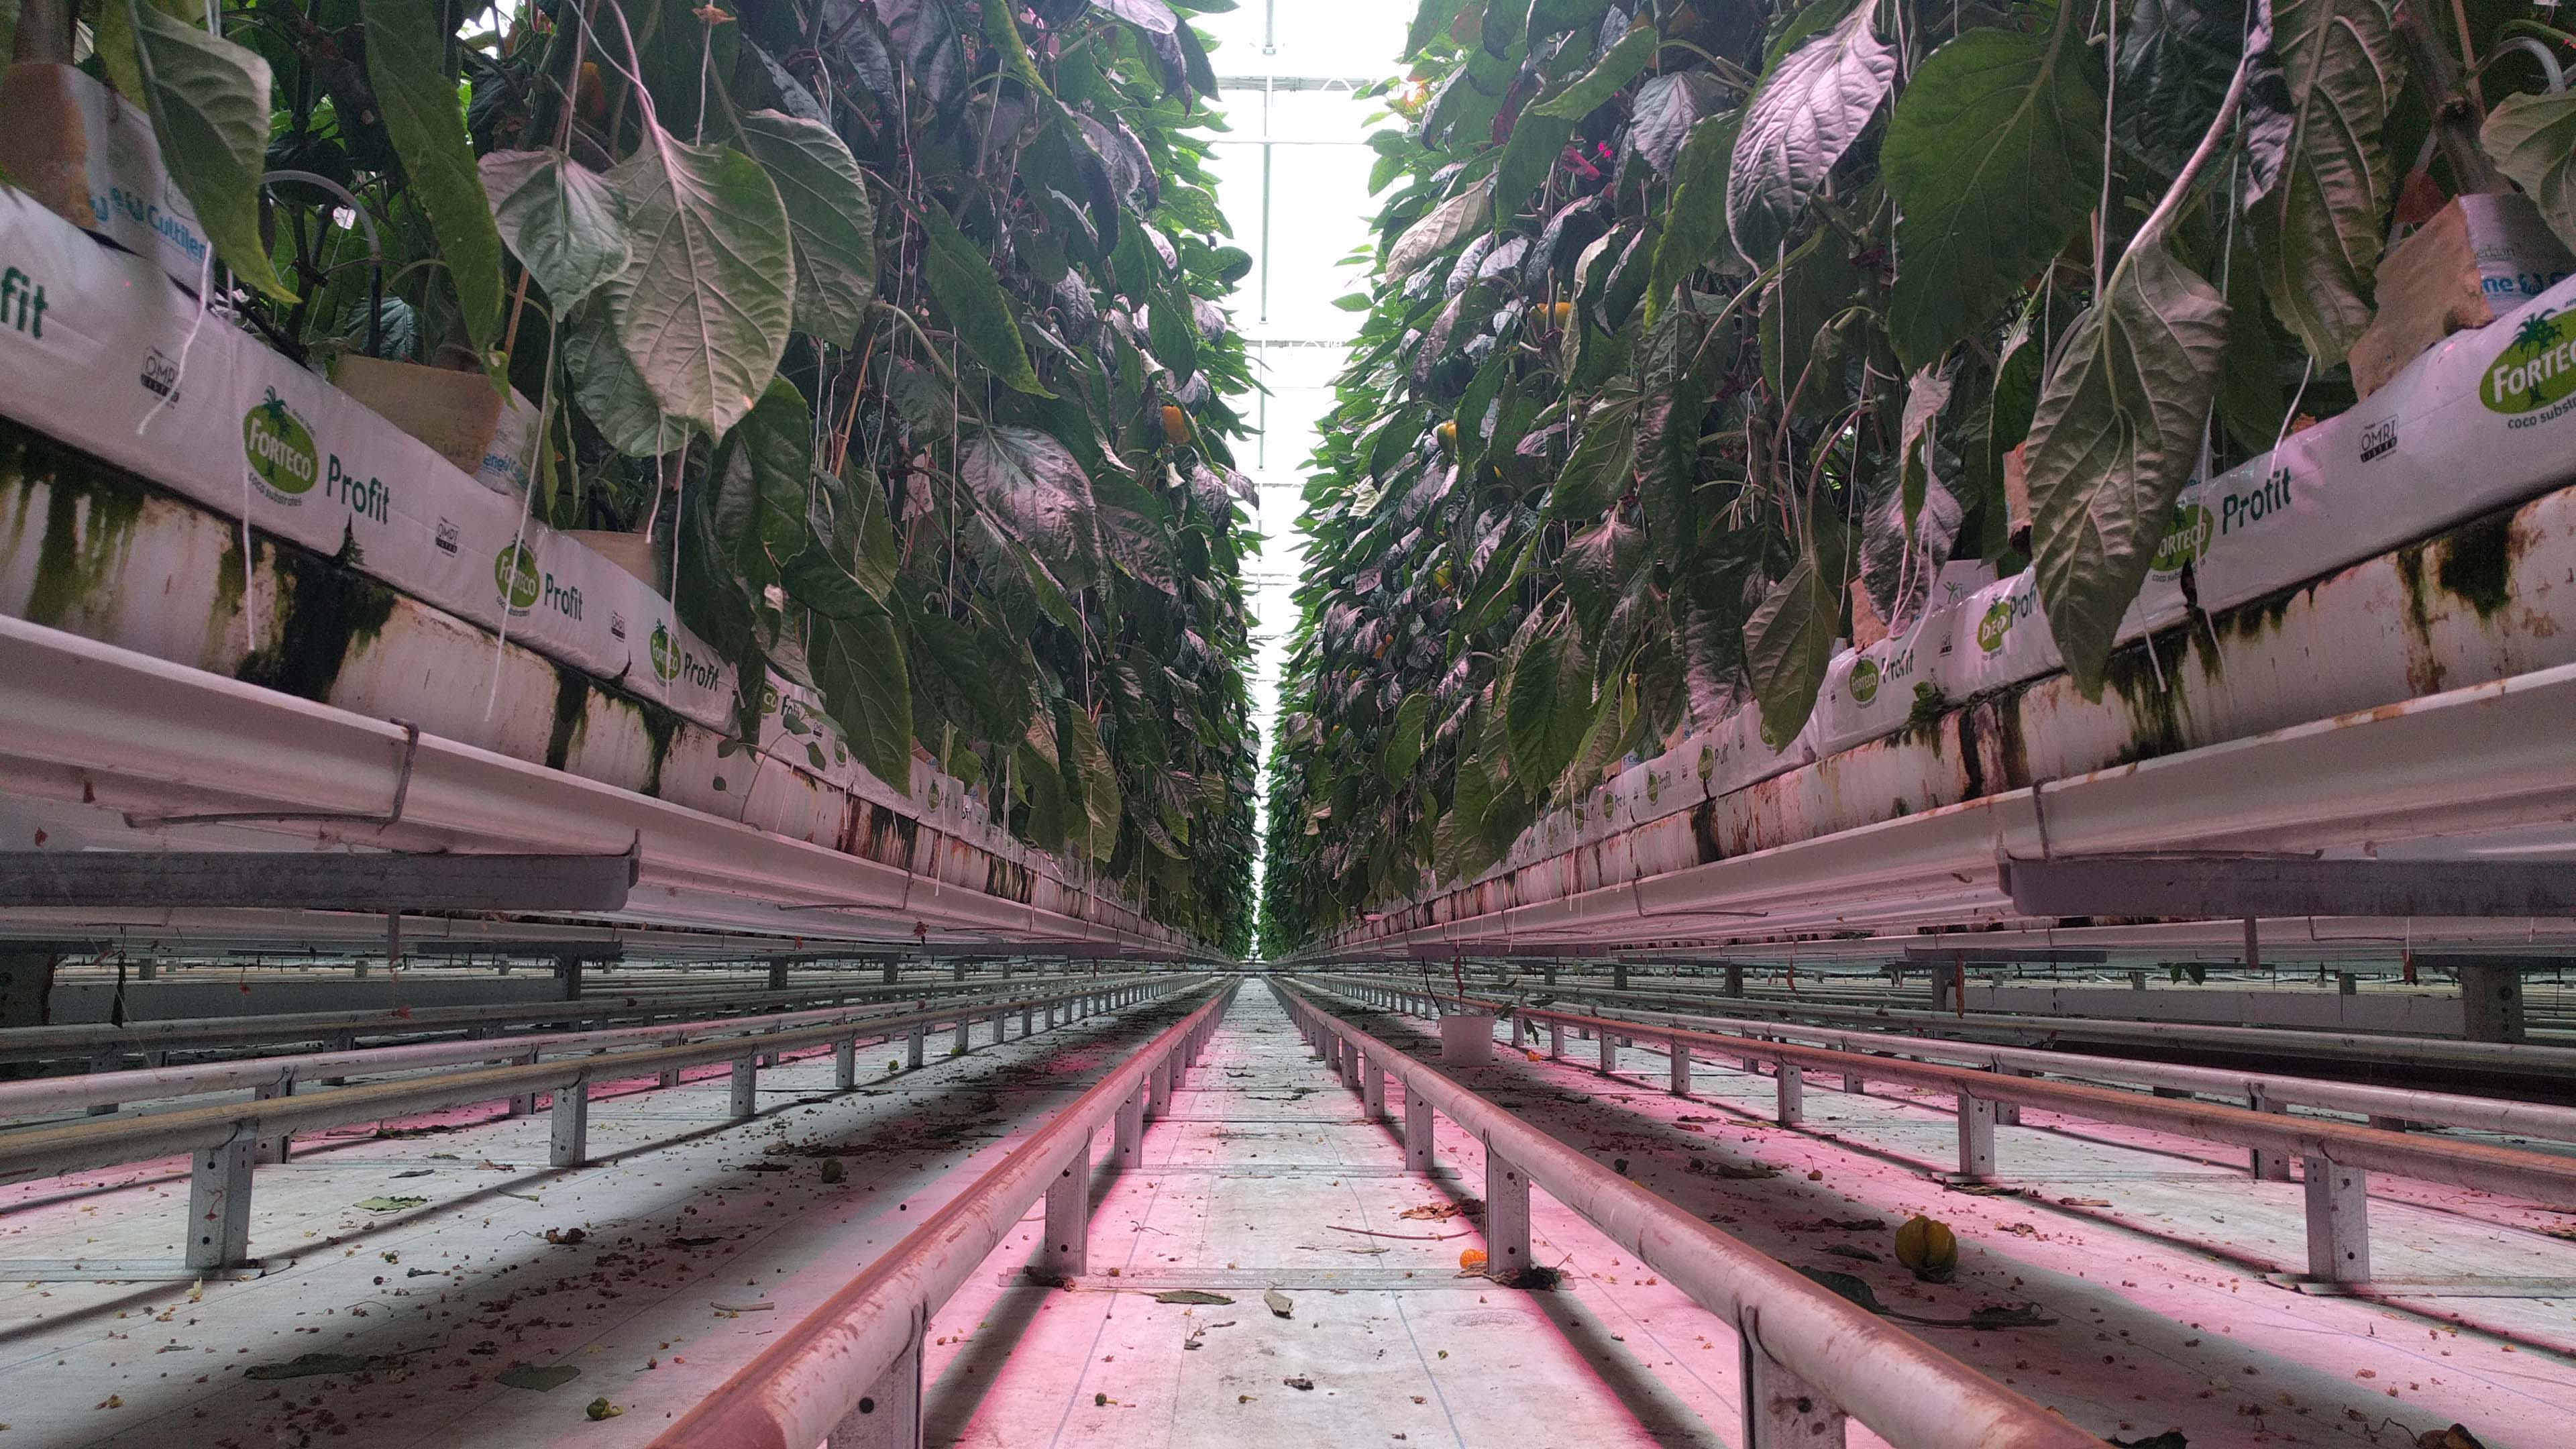 Hydroponic growing lines